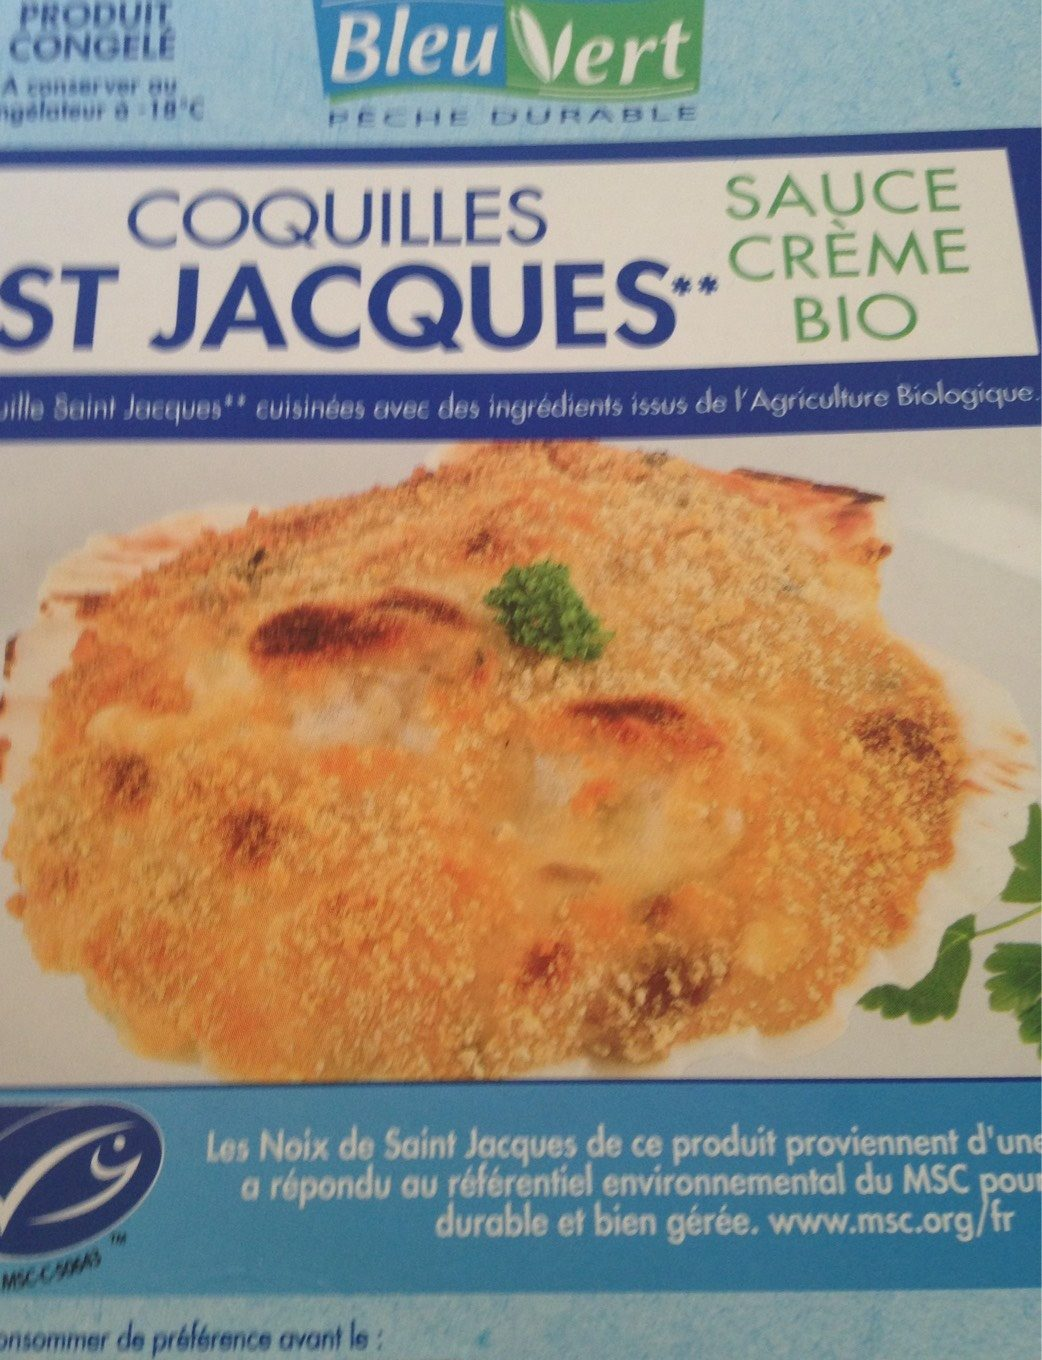 Coquilles st jacques - Product